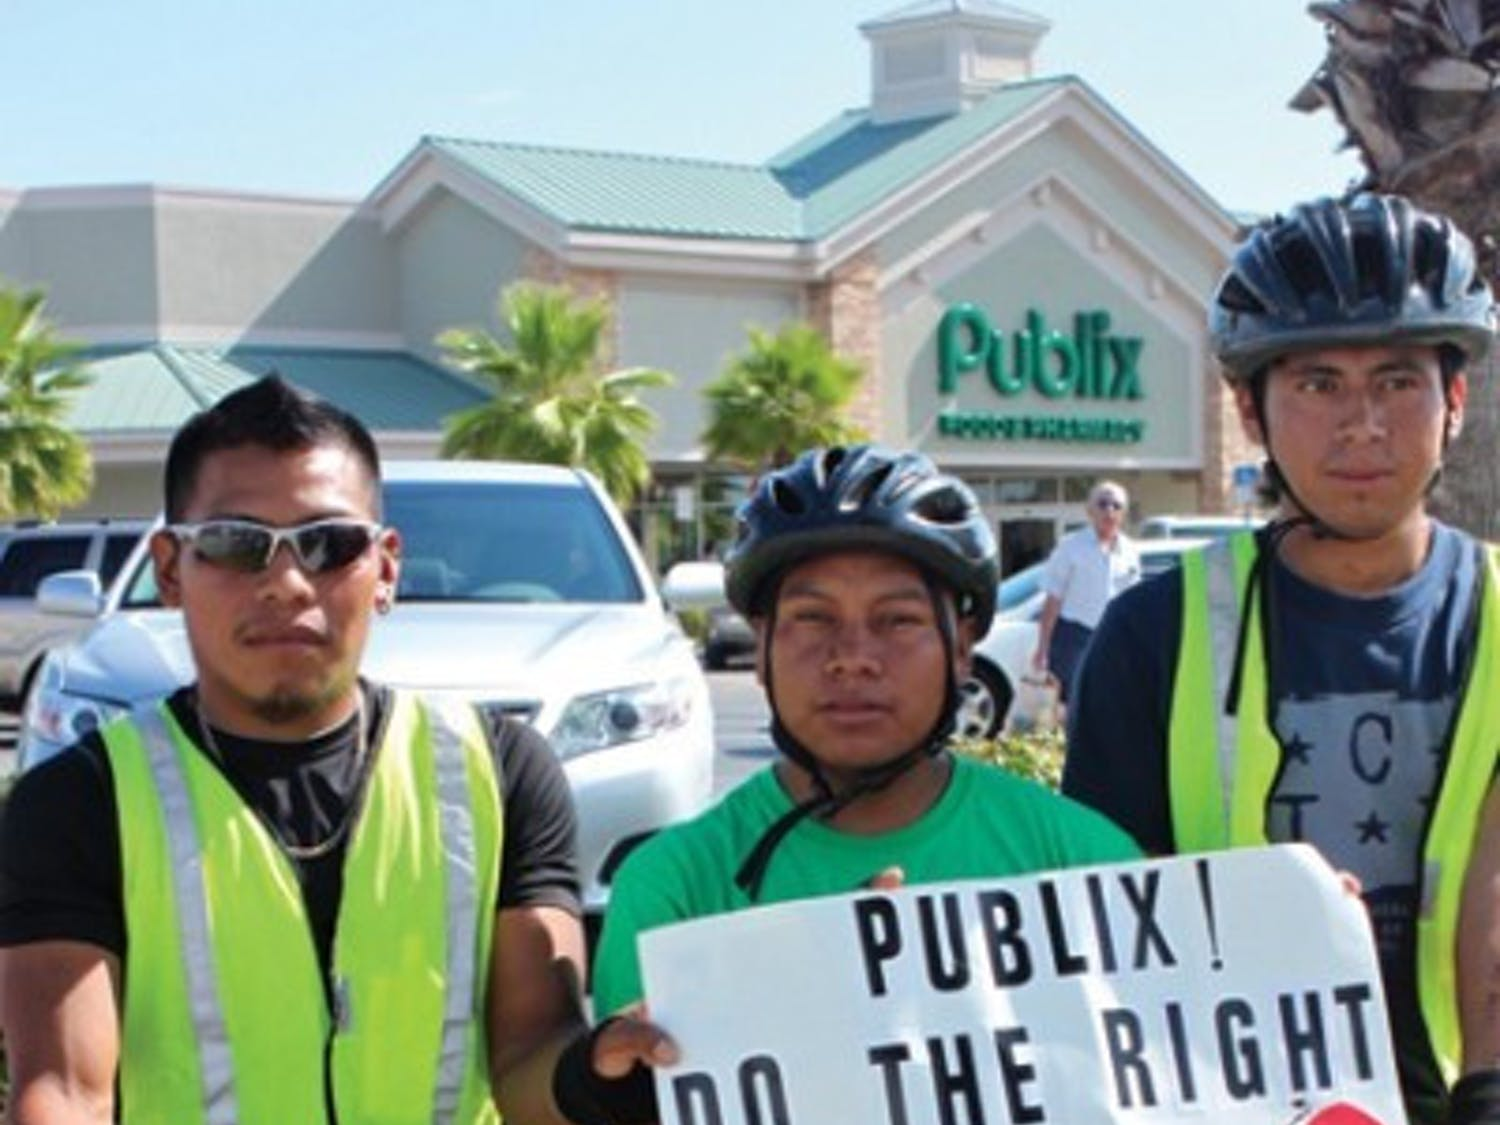 Coalition of Immokalee Workers (CIW) members Darinel Sales, Oscar Otzoy and Wilson Perez are bicycling the entire 200 miles from Immokalee, Fla., to Lakeland, Fla., as delegates from the CIW to personally invite Publix CEO Ed Crenshaw to visit Immokalee and learn about the Campaign for Fair Food.